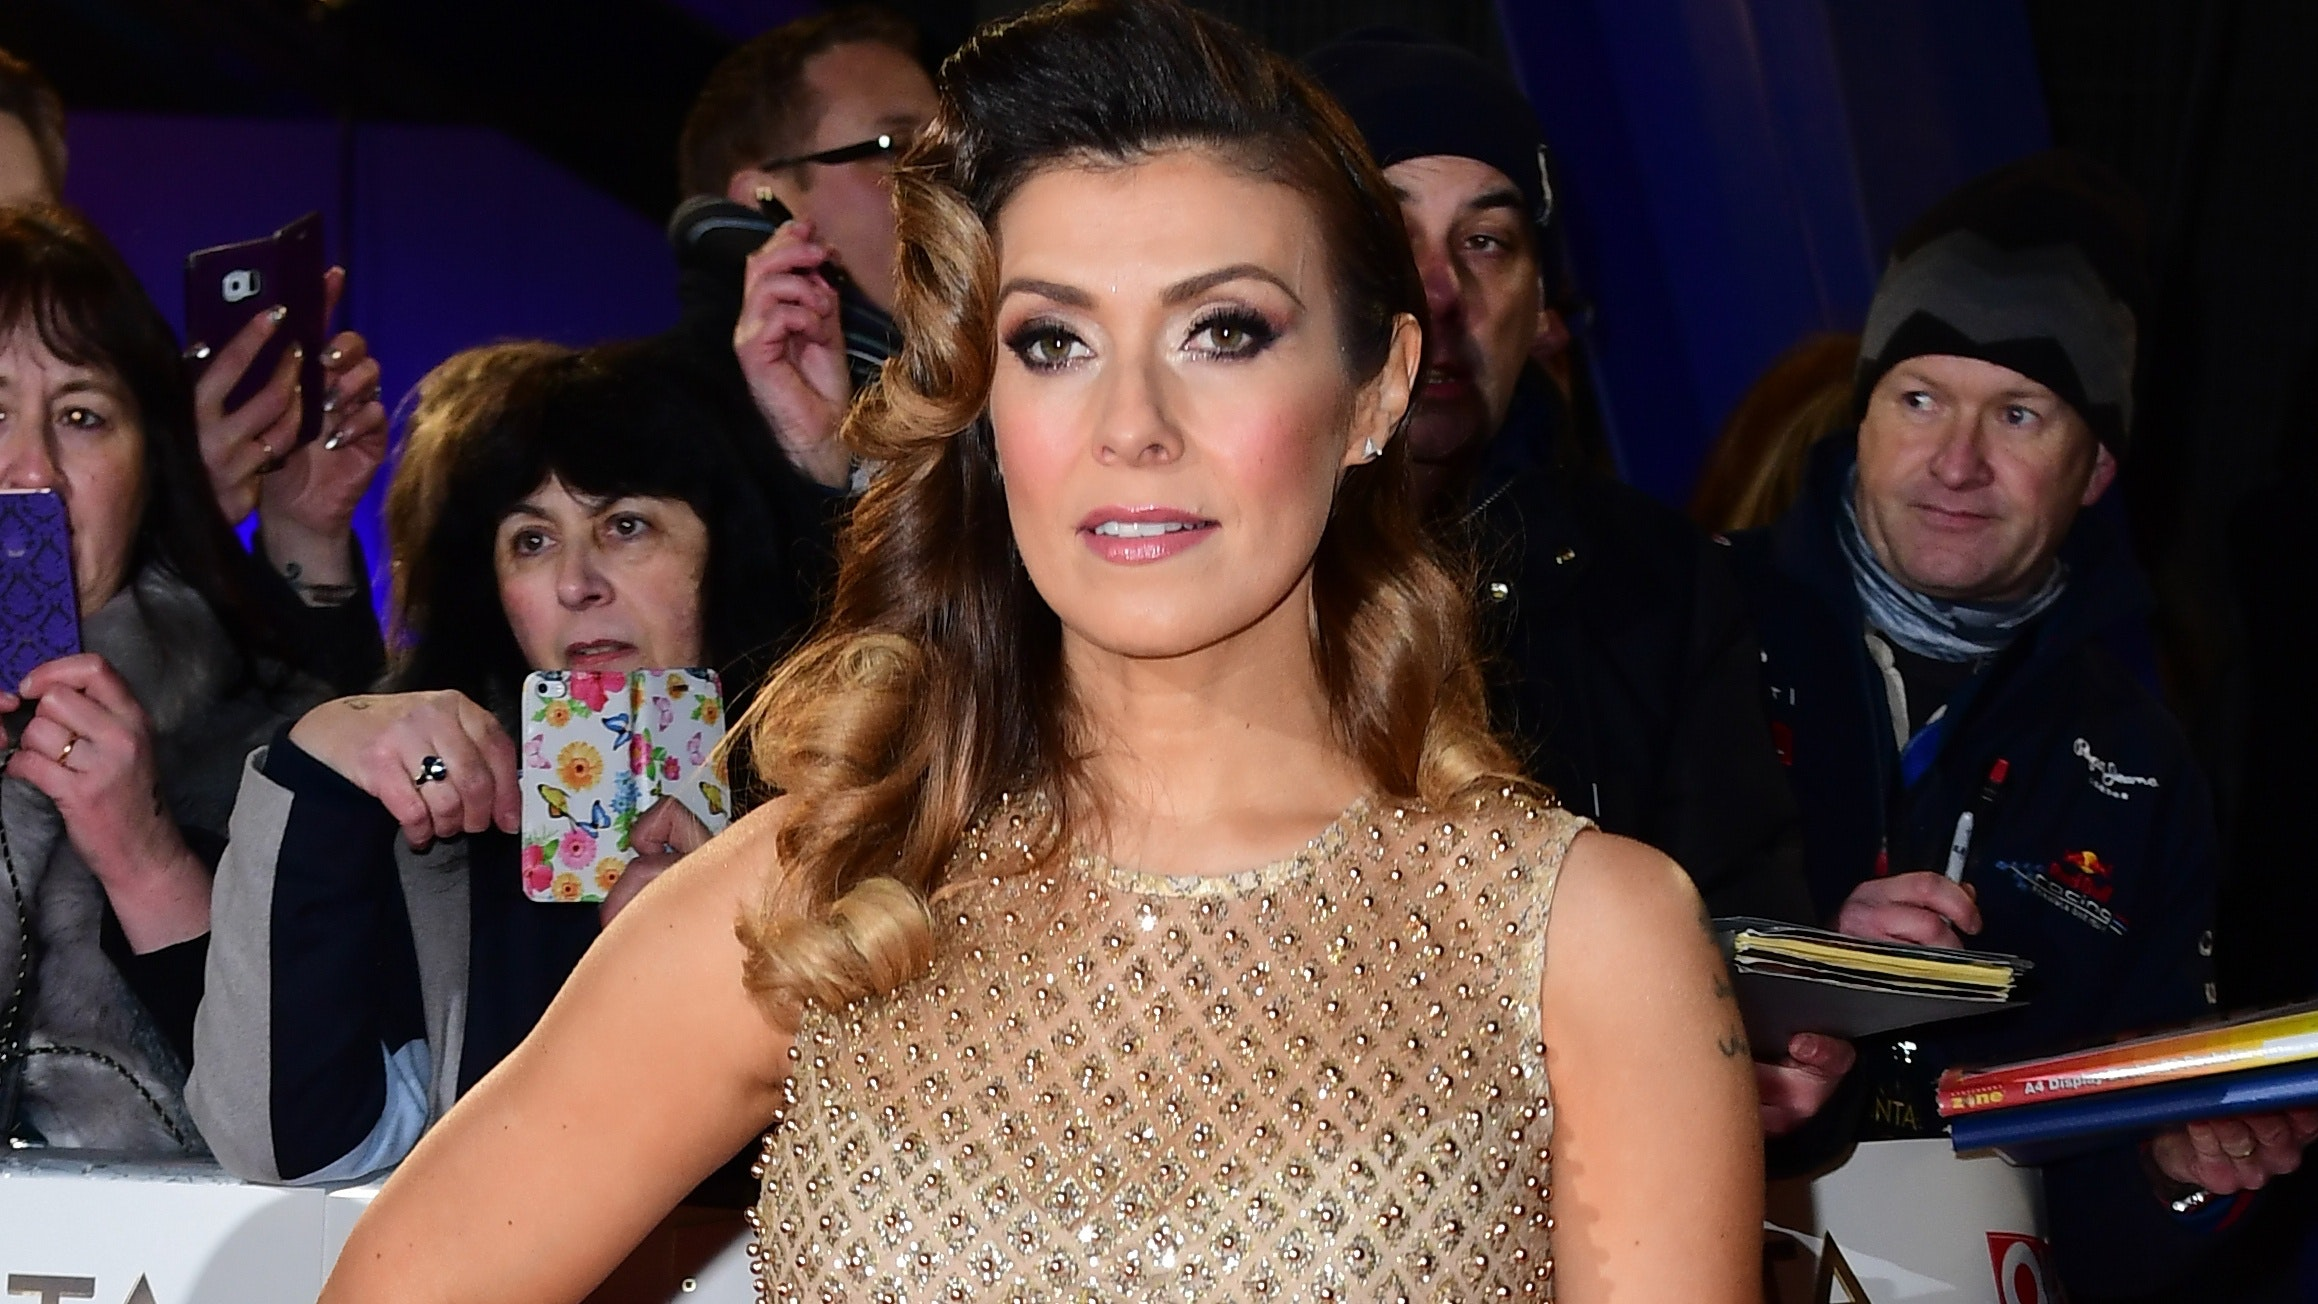 'I'm so proud to have been your mummy': Corrie star Kym Marsh's moving message to late son on birthday